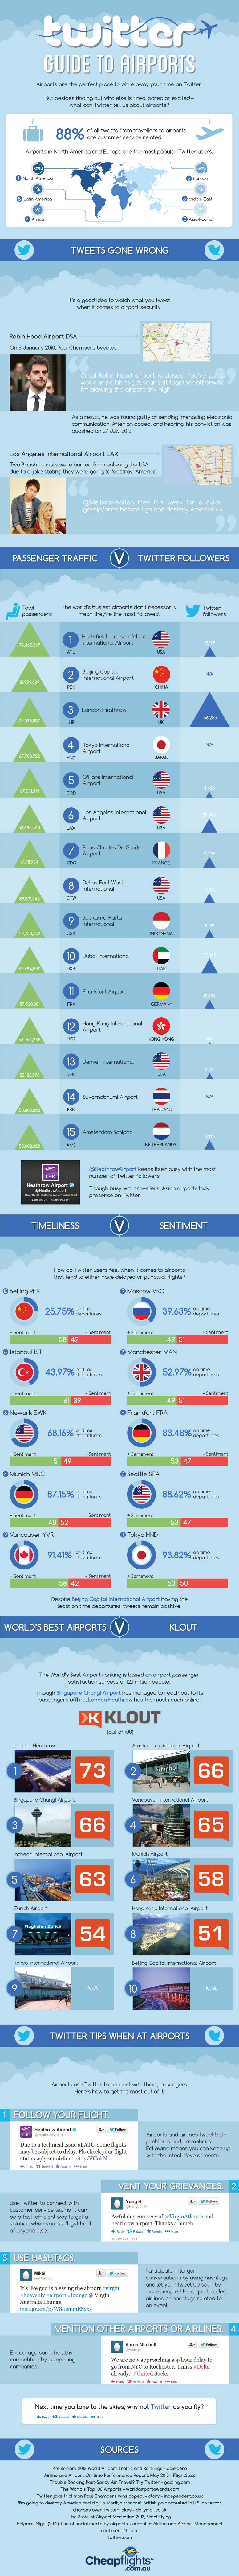 Tweeting at Airport-Infographic